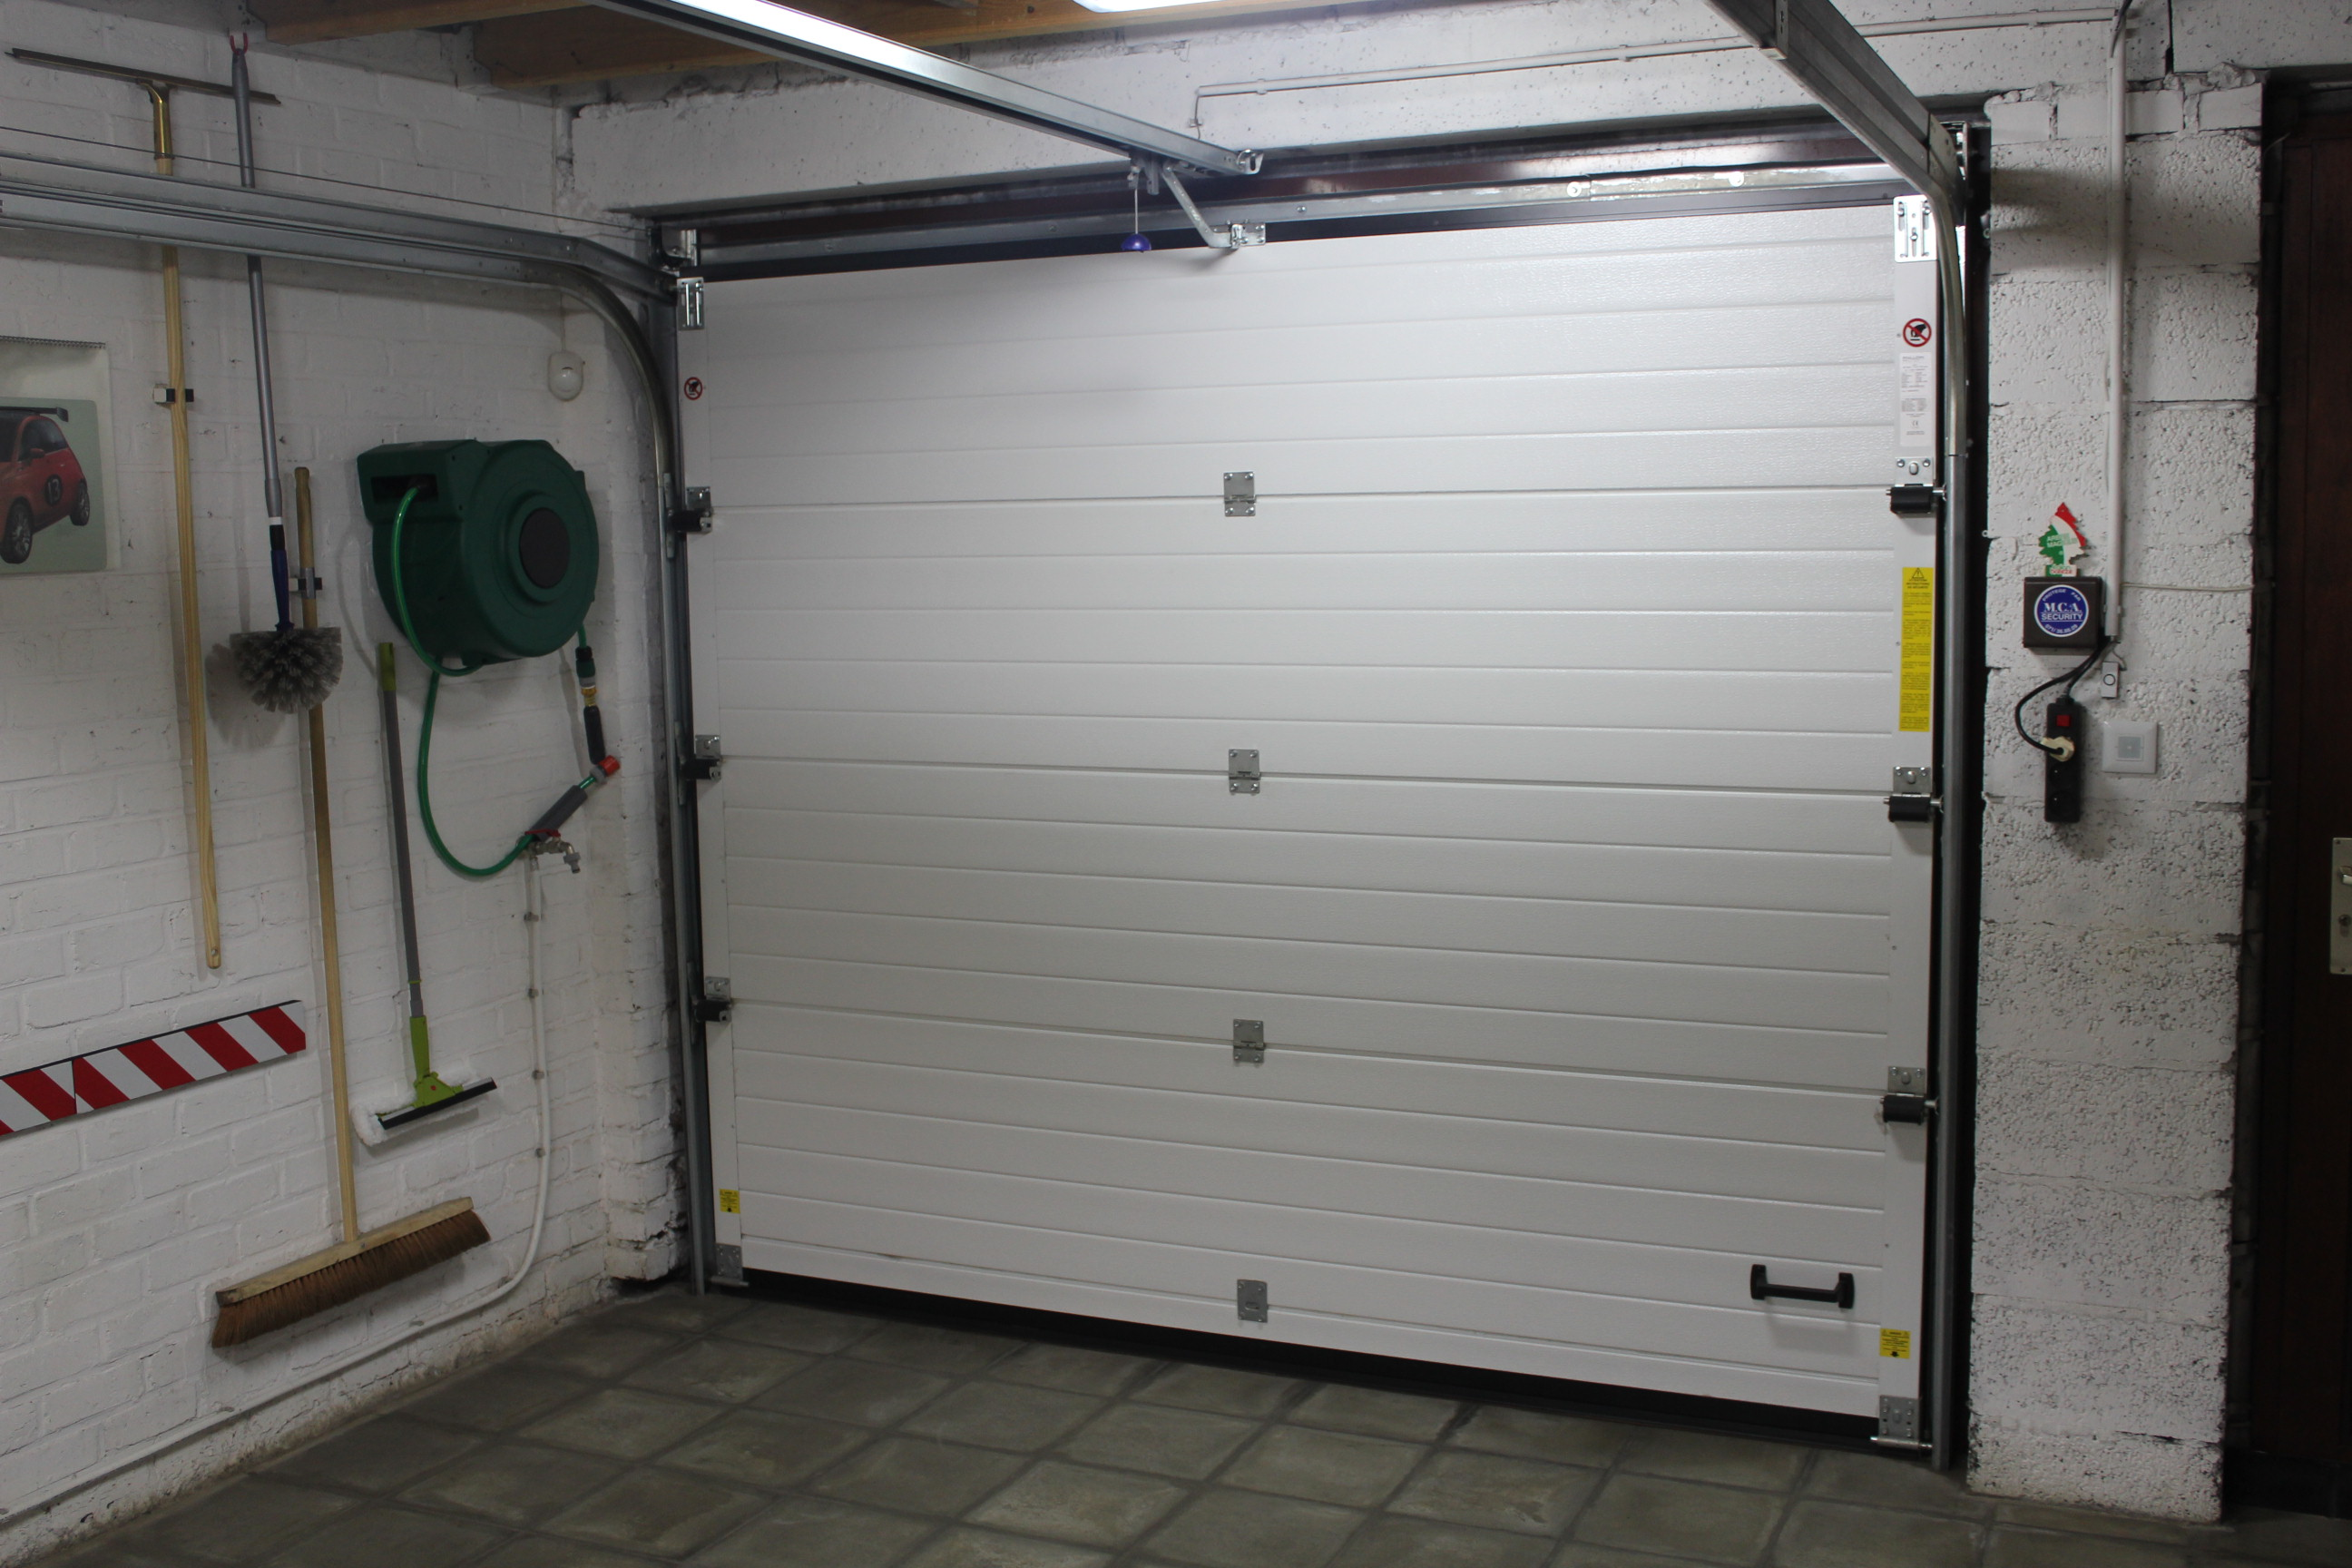 Menuiserie interieur exterieur charleroi namur mons mp for Porte garage sectionnelle